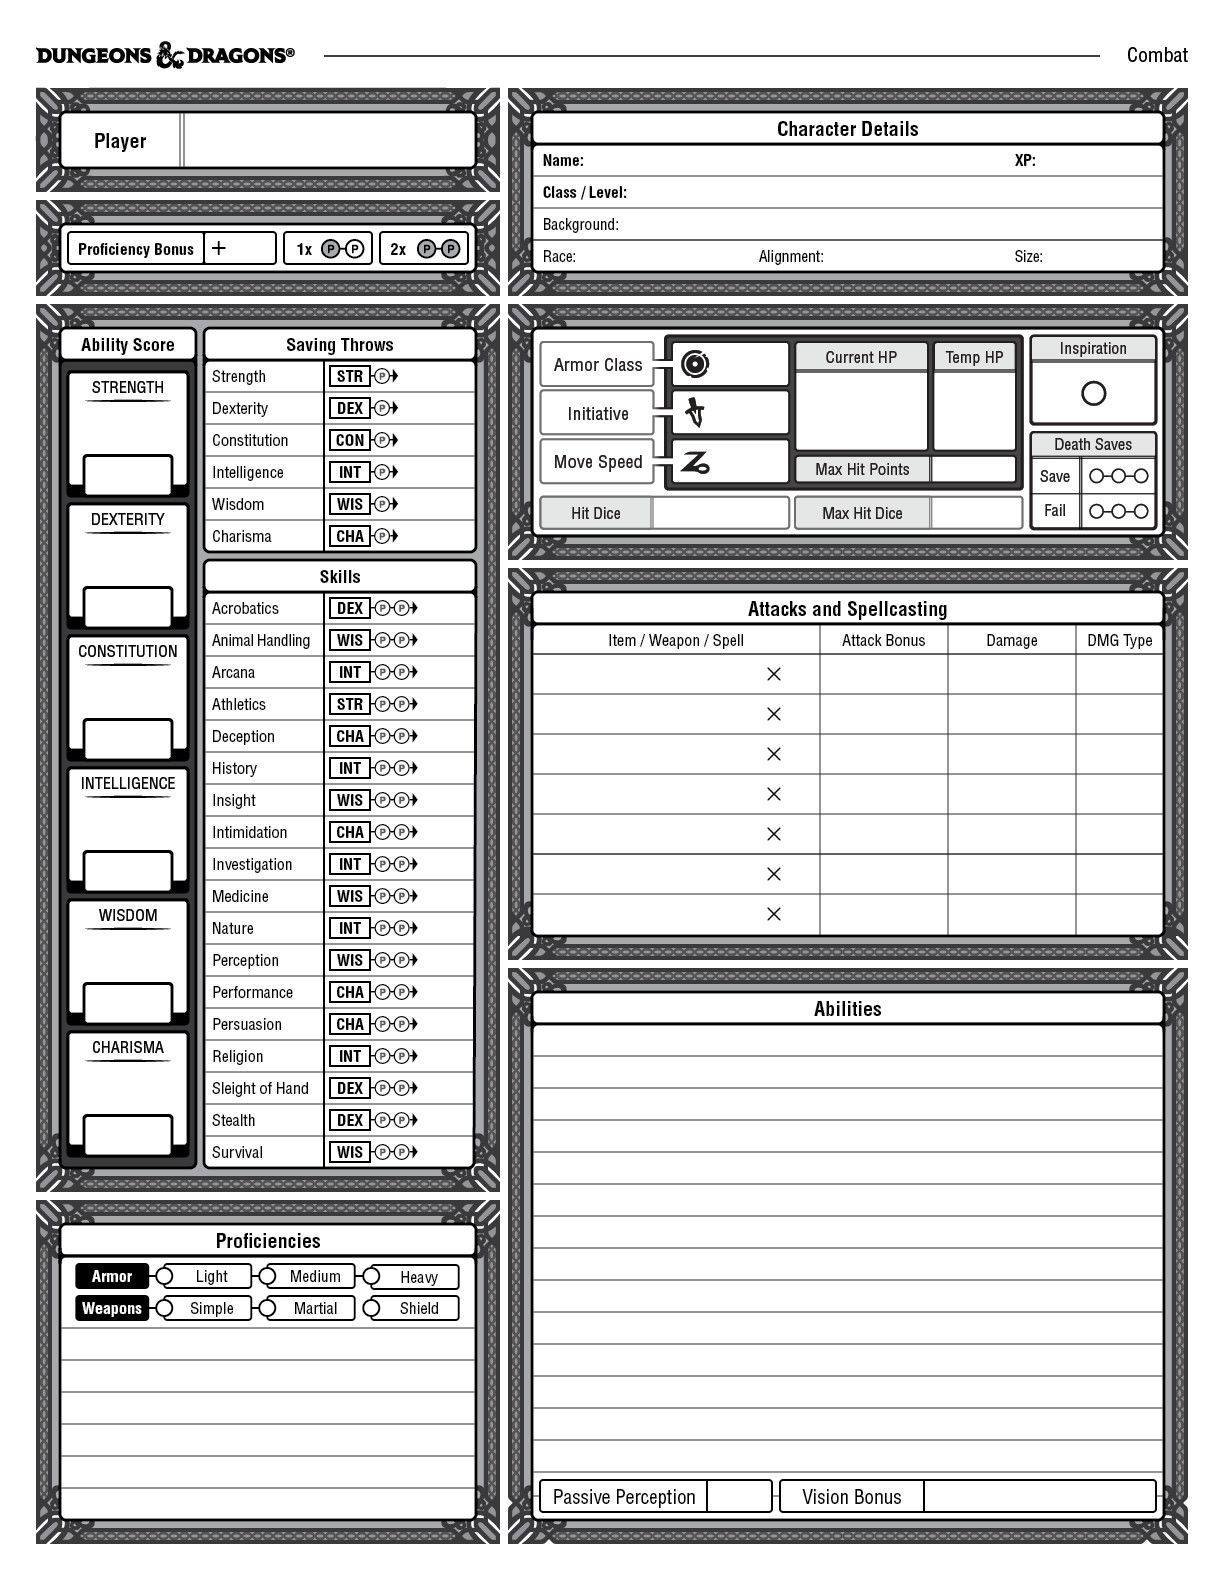 A custom, combat-oriented character sheets for the Dungeons